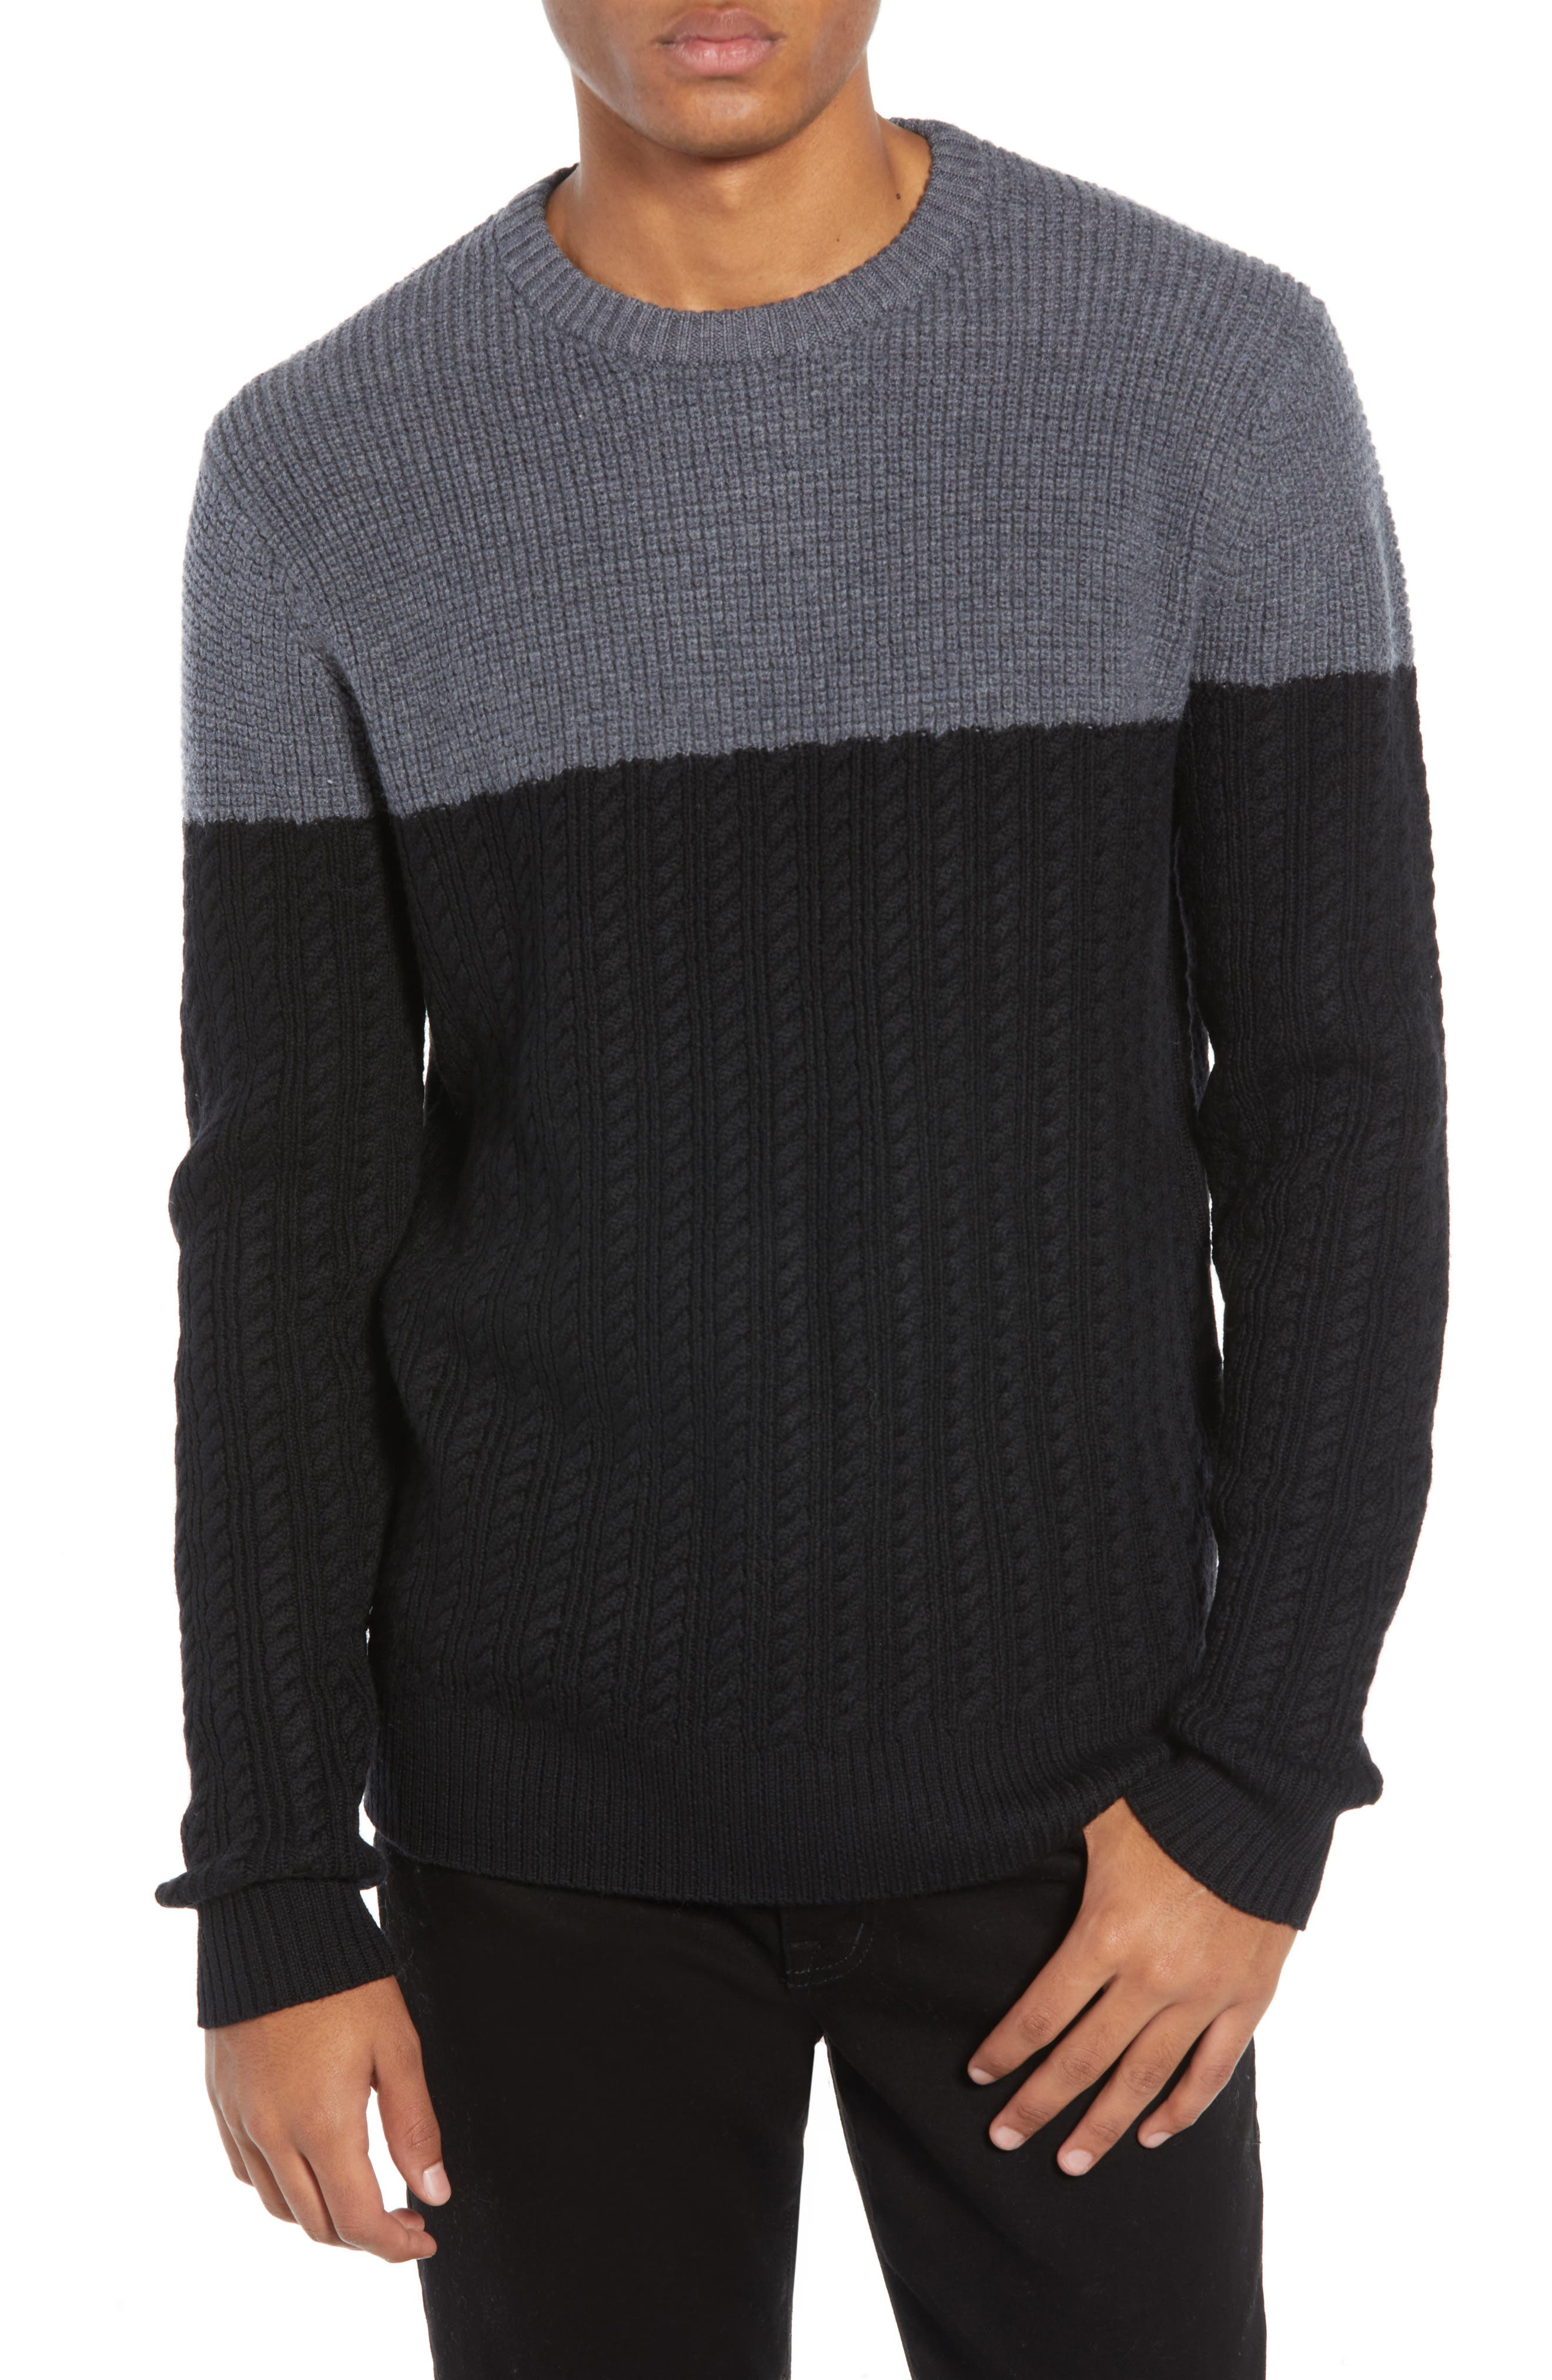 Nordstrom Signature Block Merino Wool Cable Knit Sweater, Black